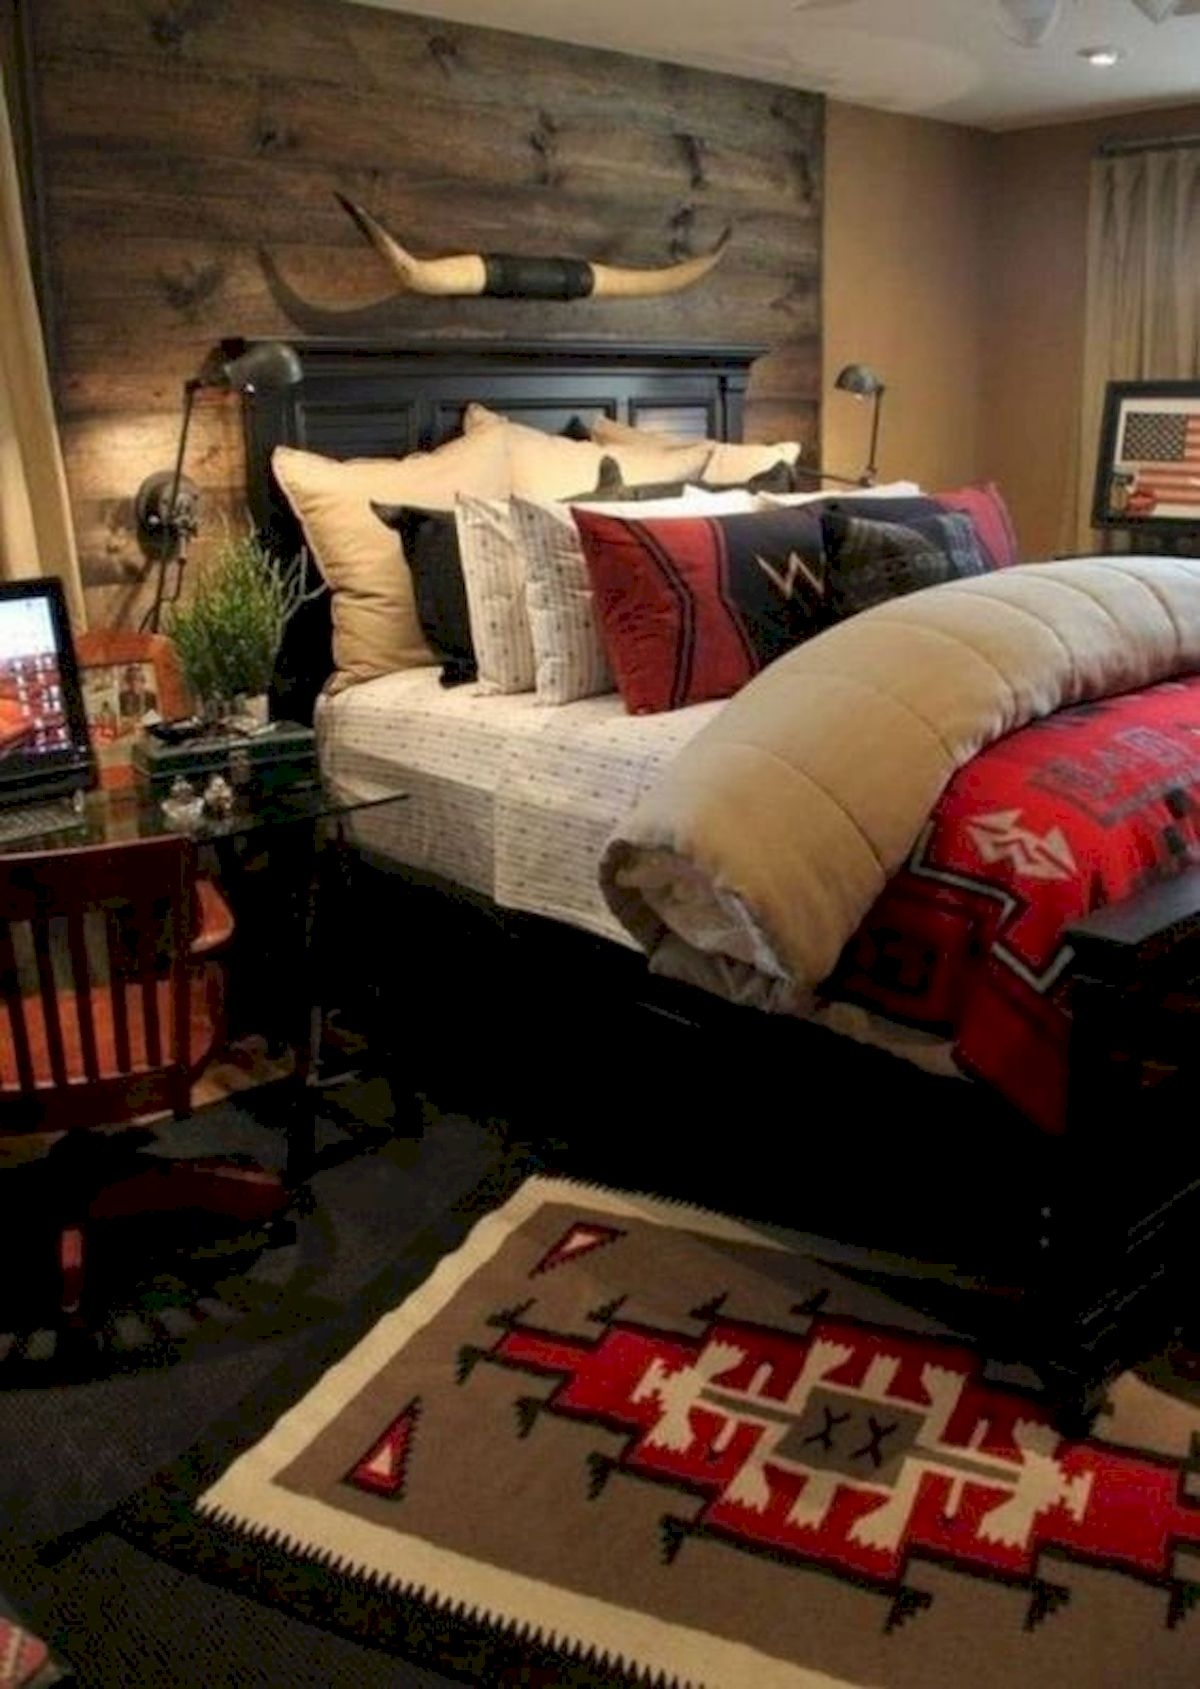 60 Brilliant Space Saving Ideas For Small Bedroom (46)